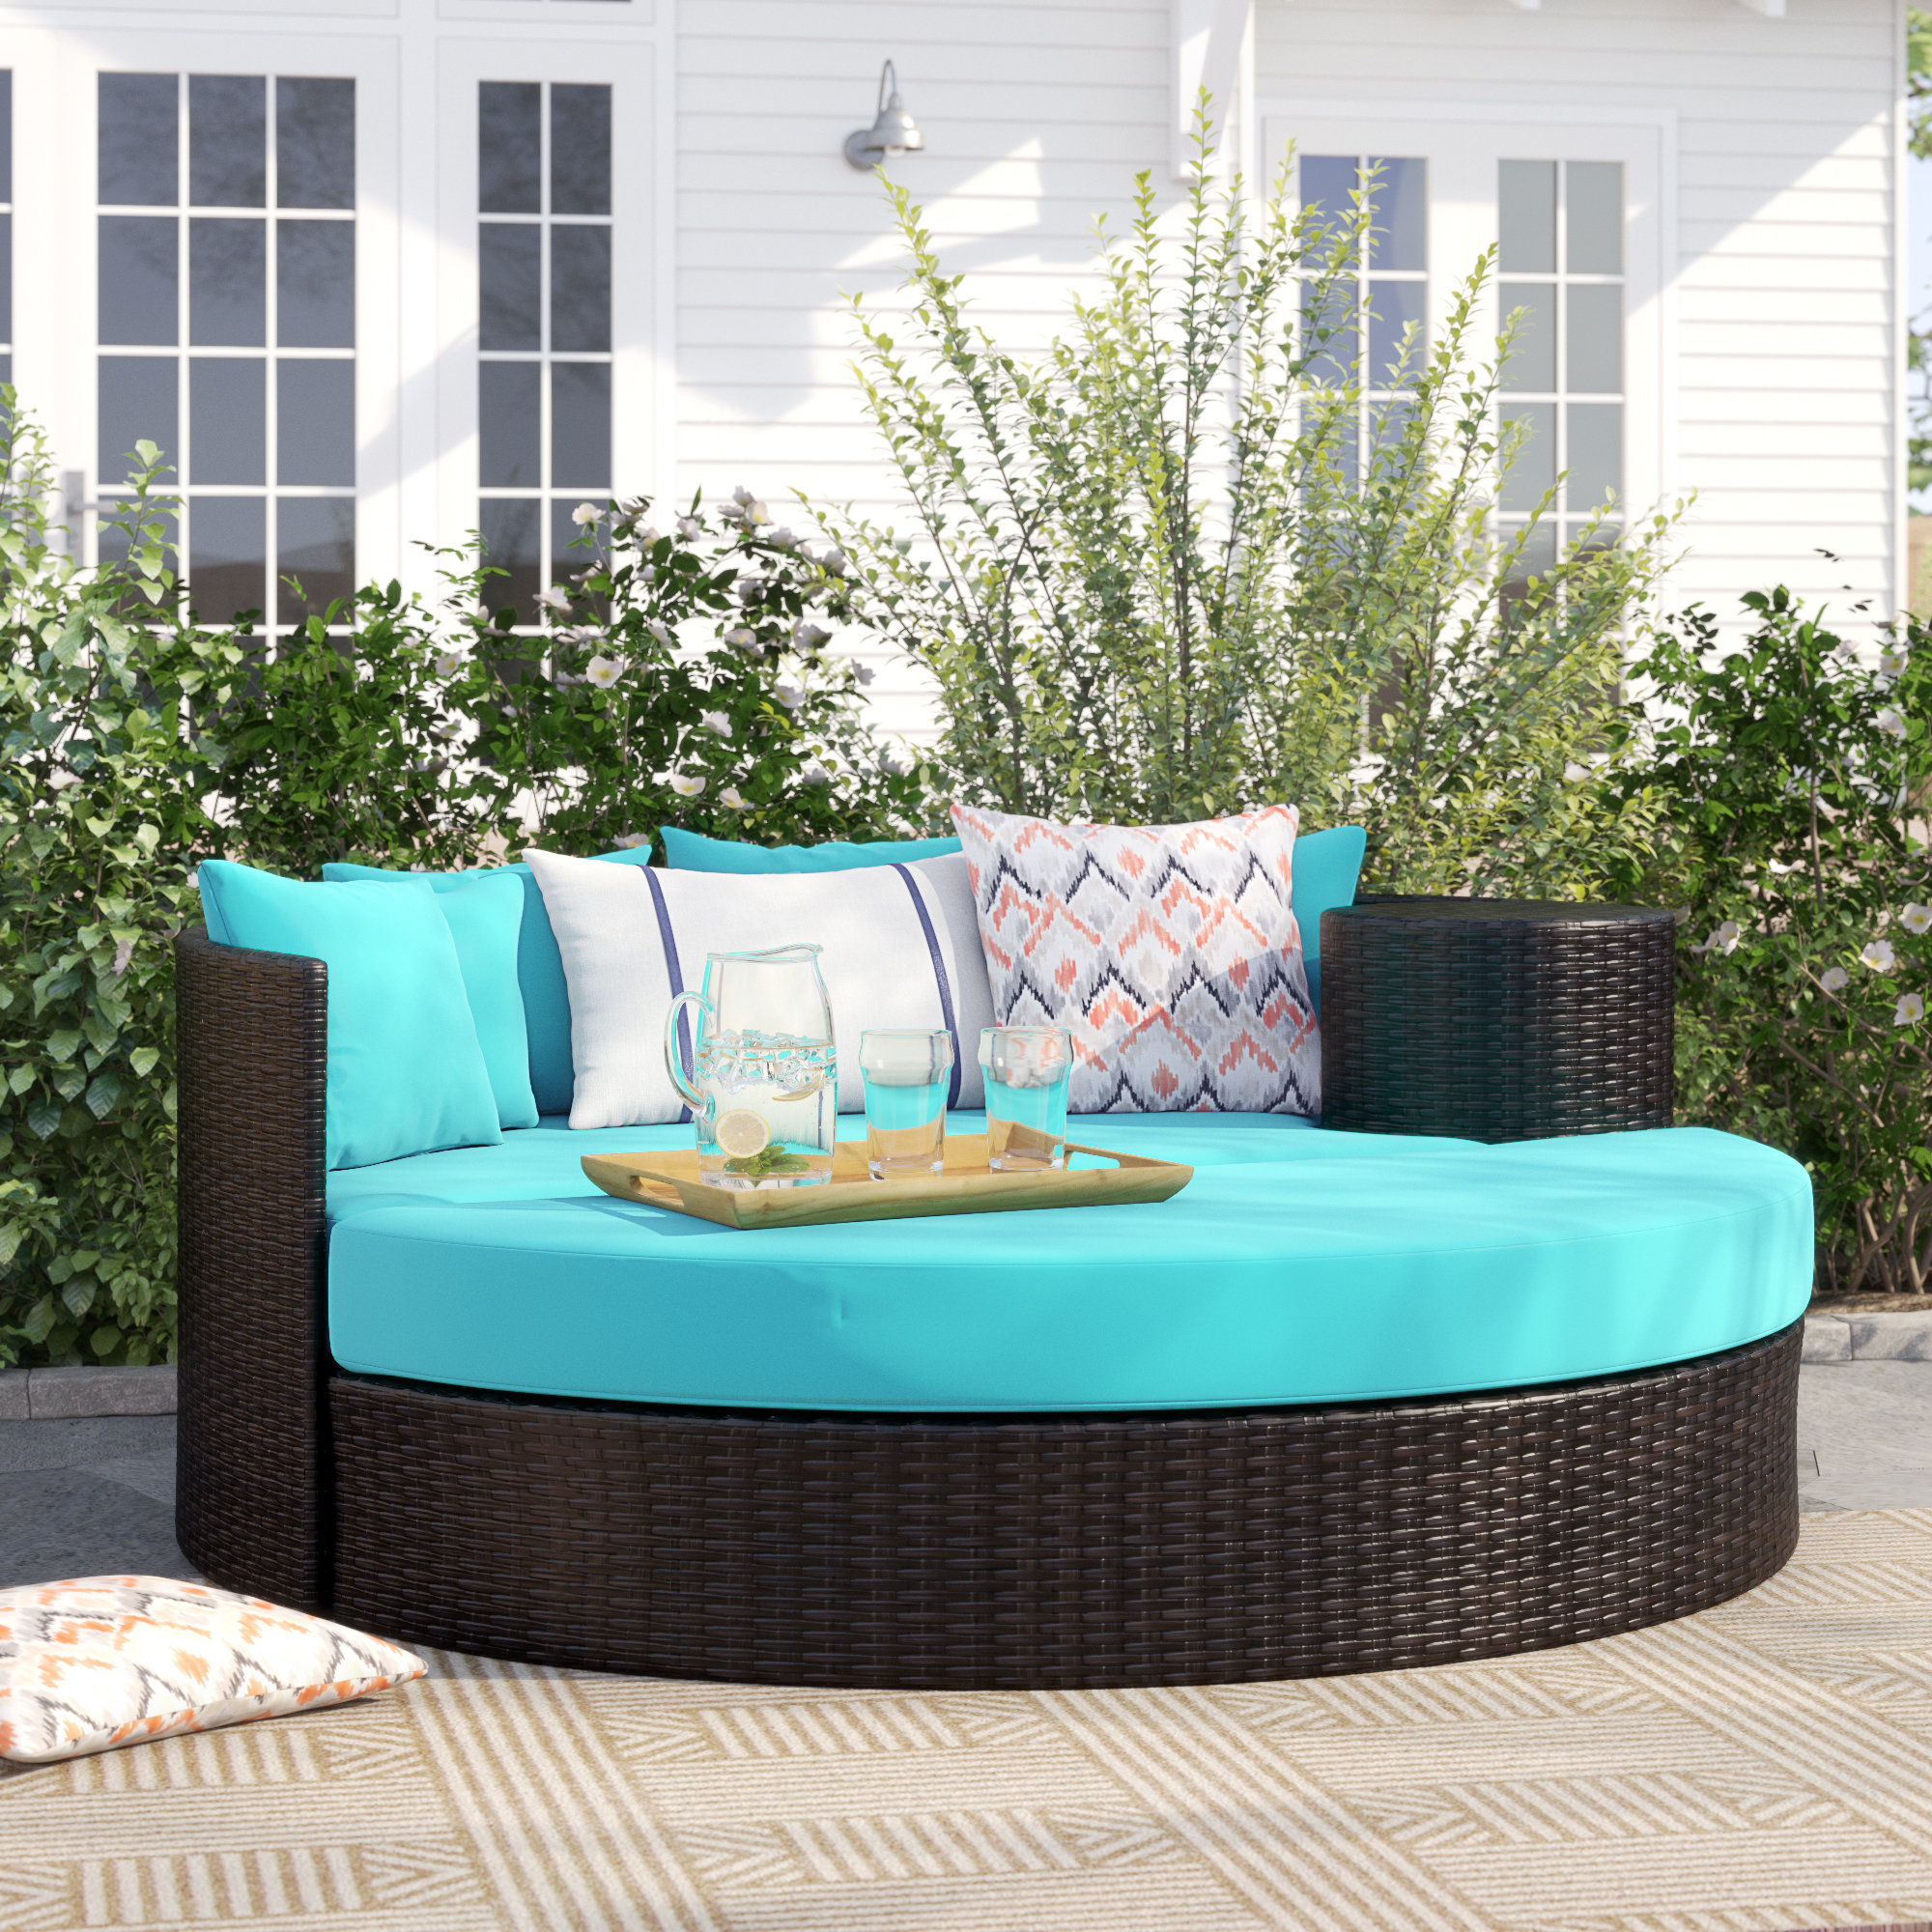 Fashionable Freeport Patio Daybed With Cushion Intended For Carrasco Patio Daybeds With Cushions (View 7 of 20)